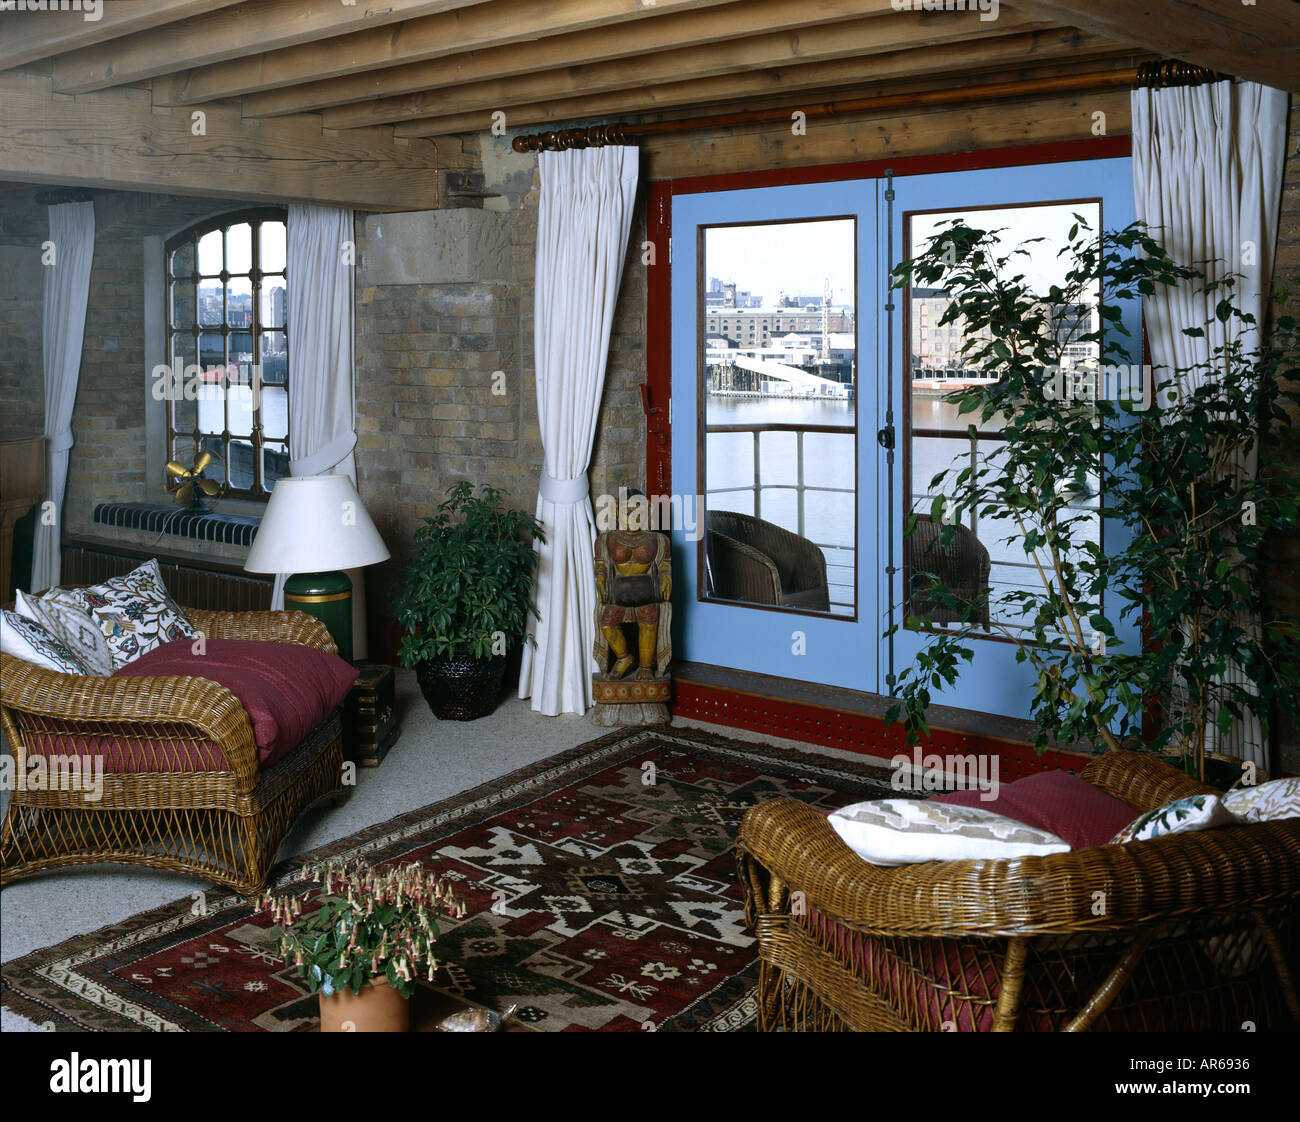 Show Flat, New Concordia Wharf, Docklands. Living area with view through window. - Stock Image